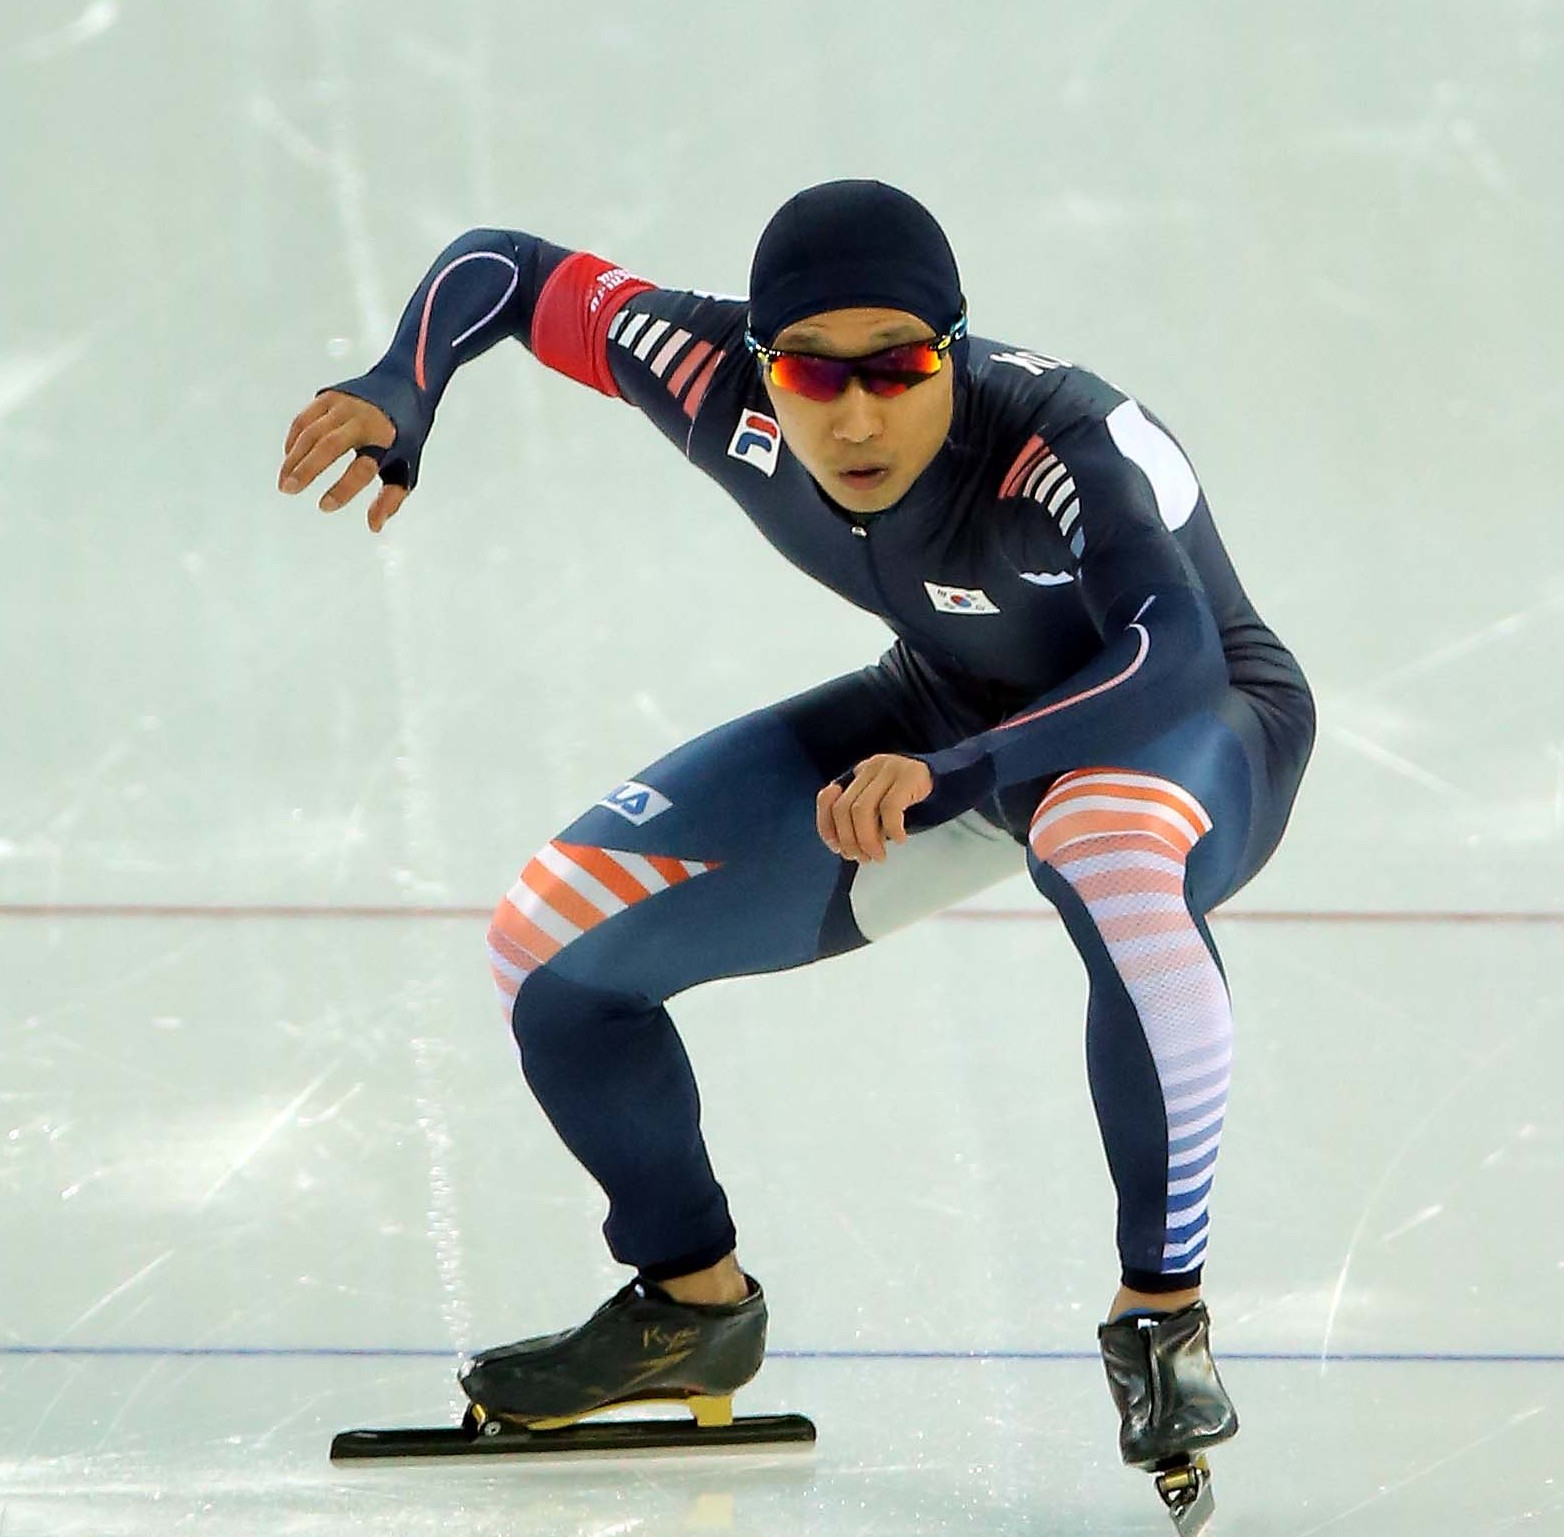 Six-time Olympian Lee Kyou-hyuk started out well in 1,000 meter race, but could not maintain that pace. (Yonhap)